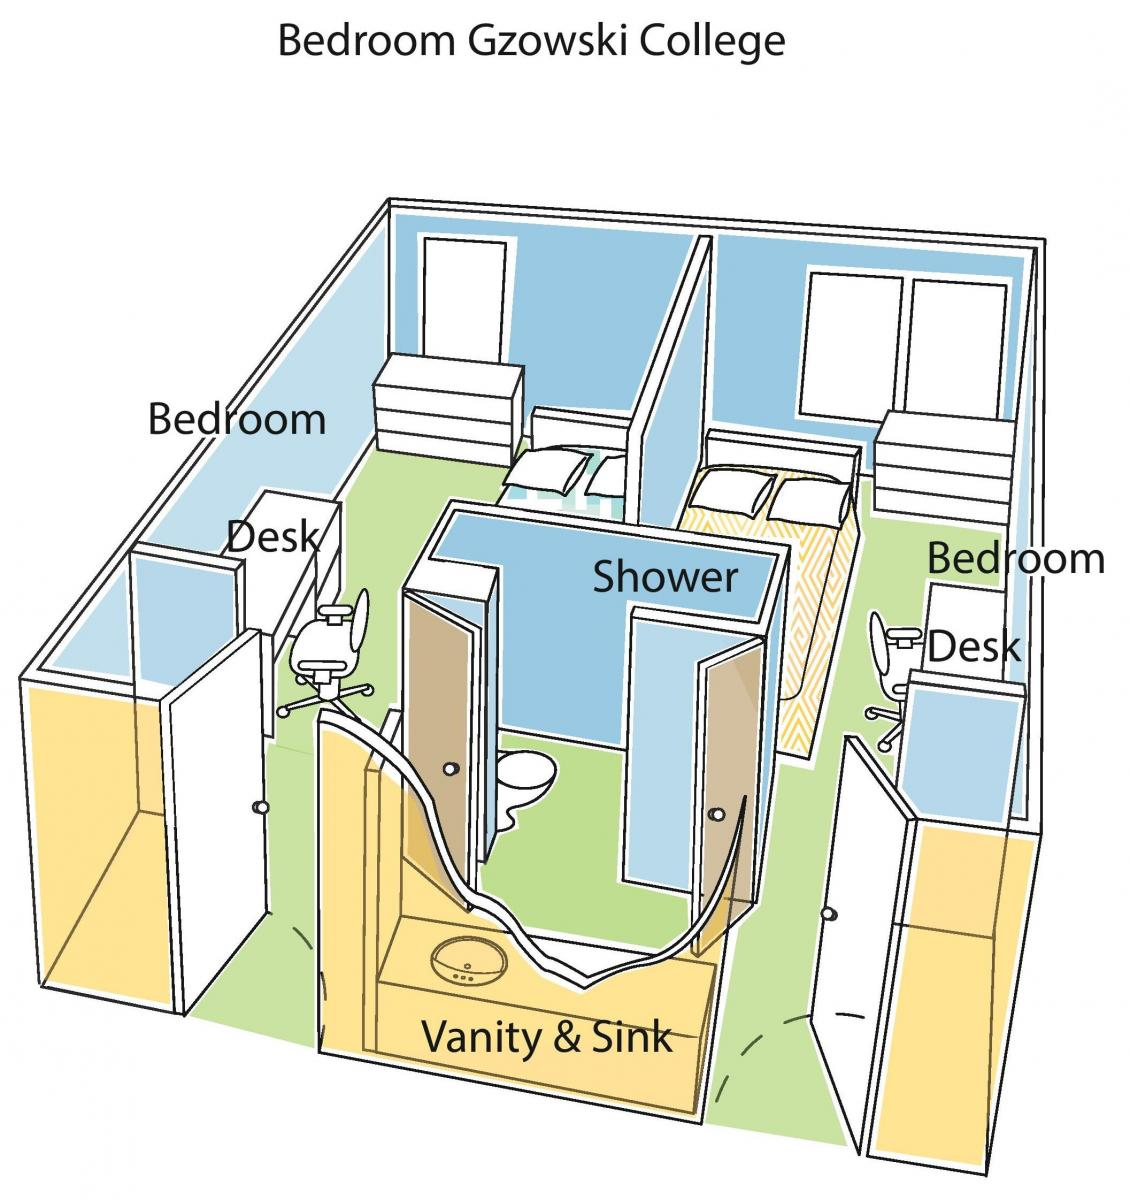 Illustrated interior of Gzowski College bedroom